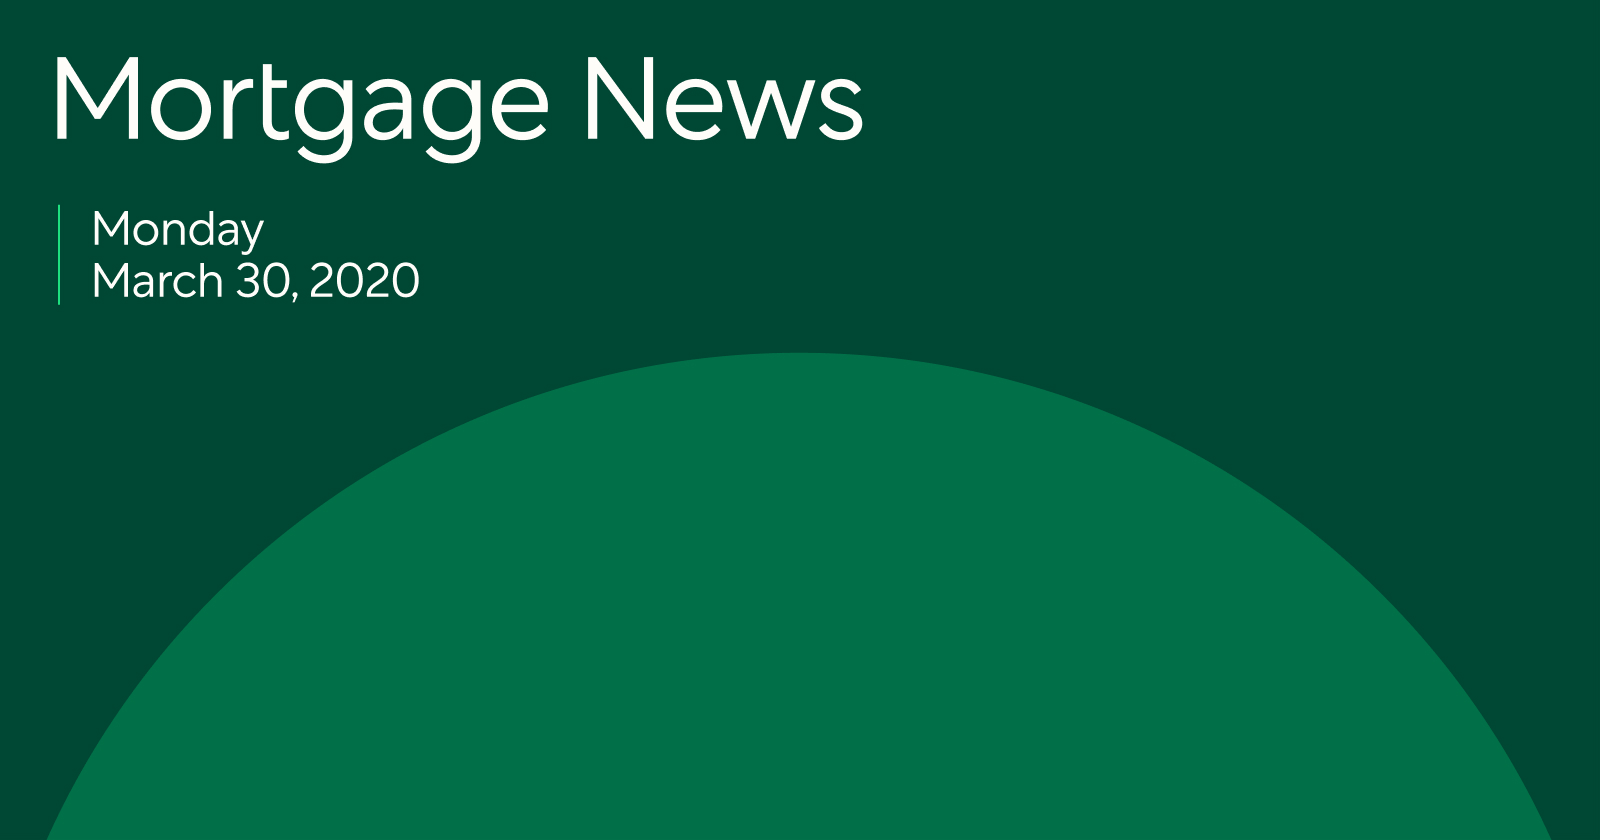 Mortgage News: Published by Better March 30, 2020